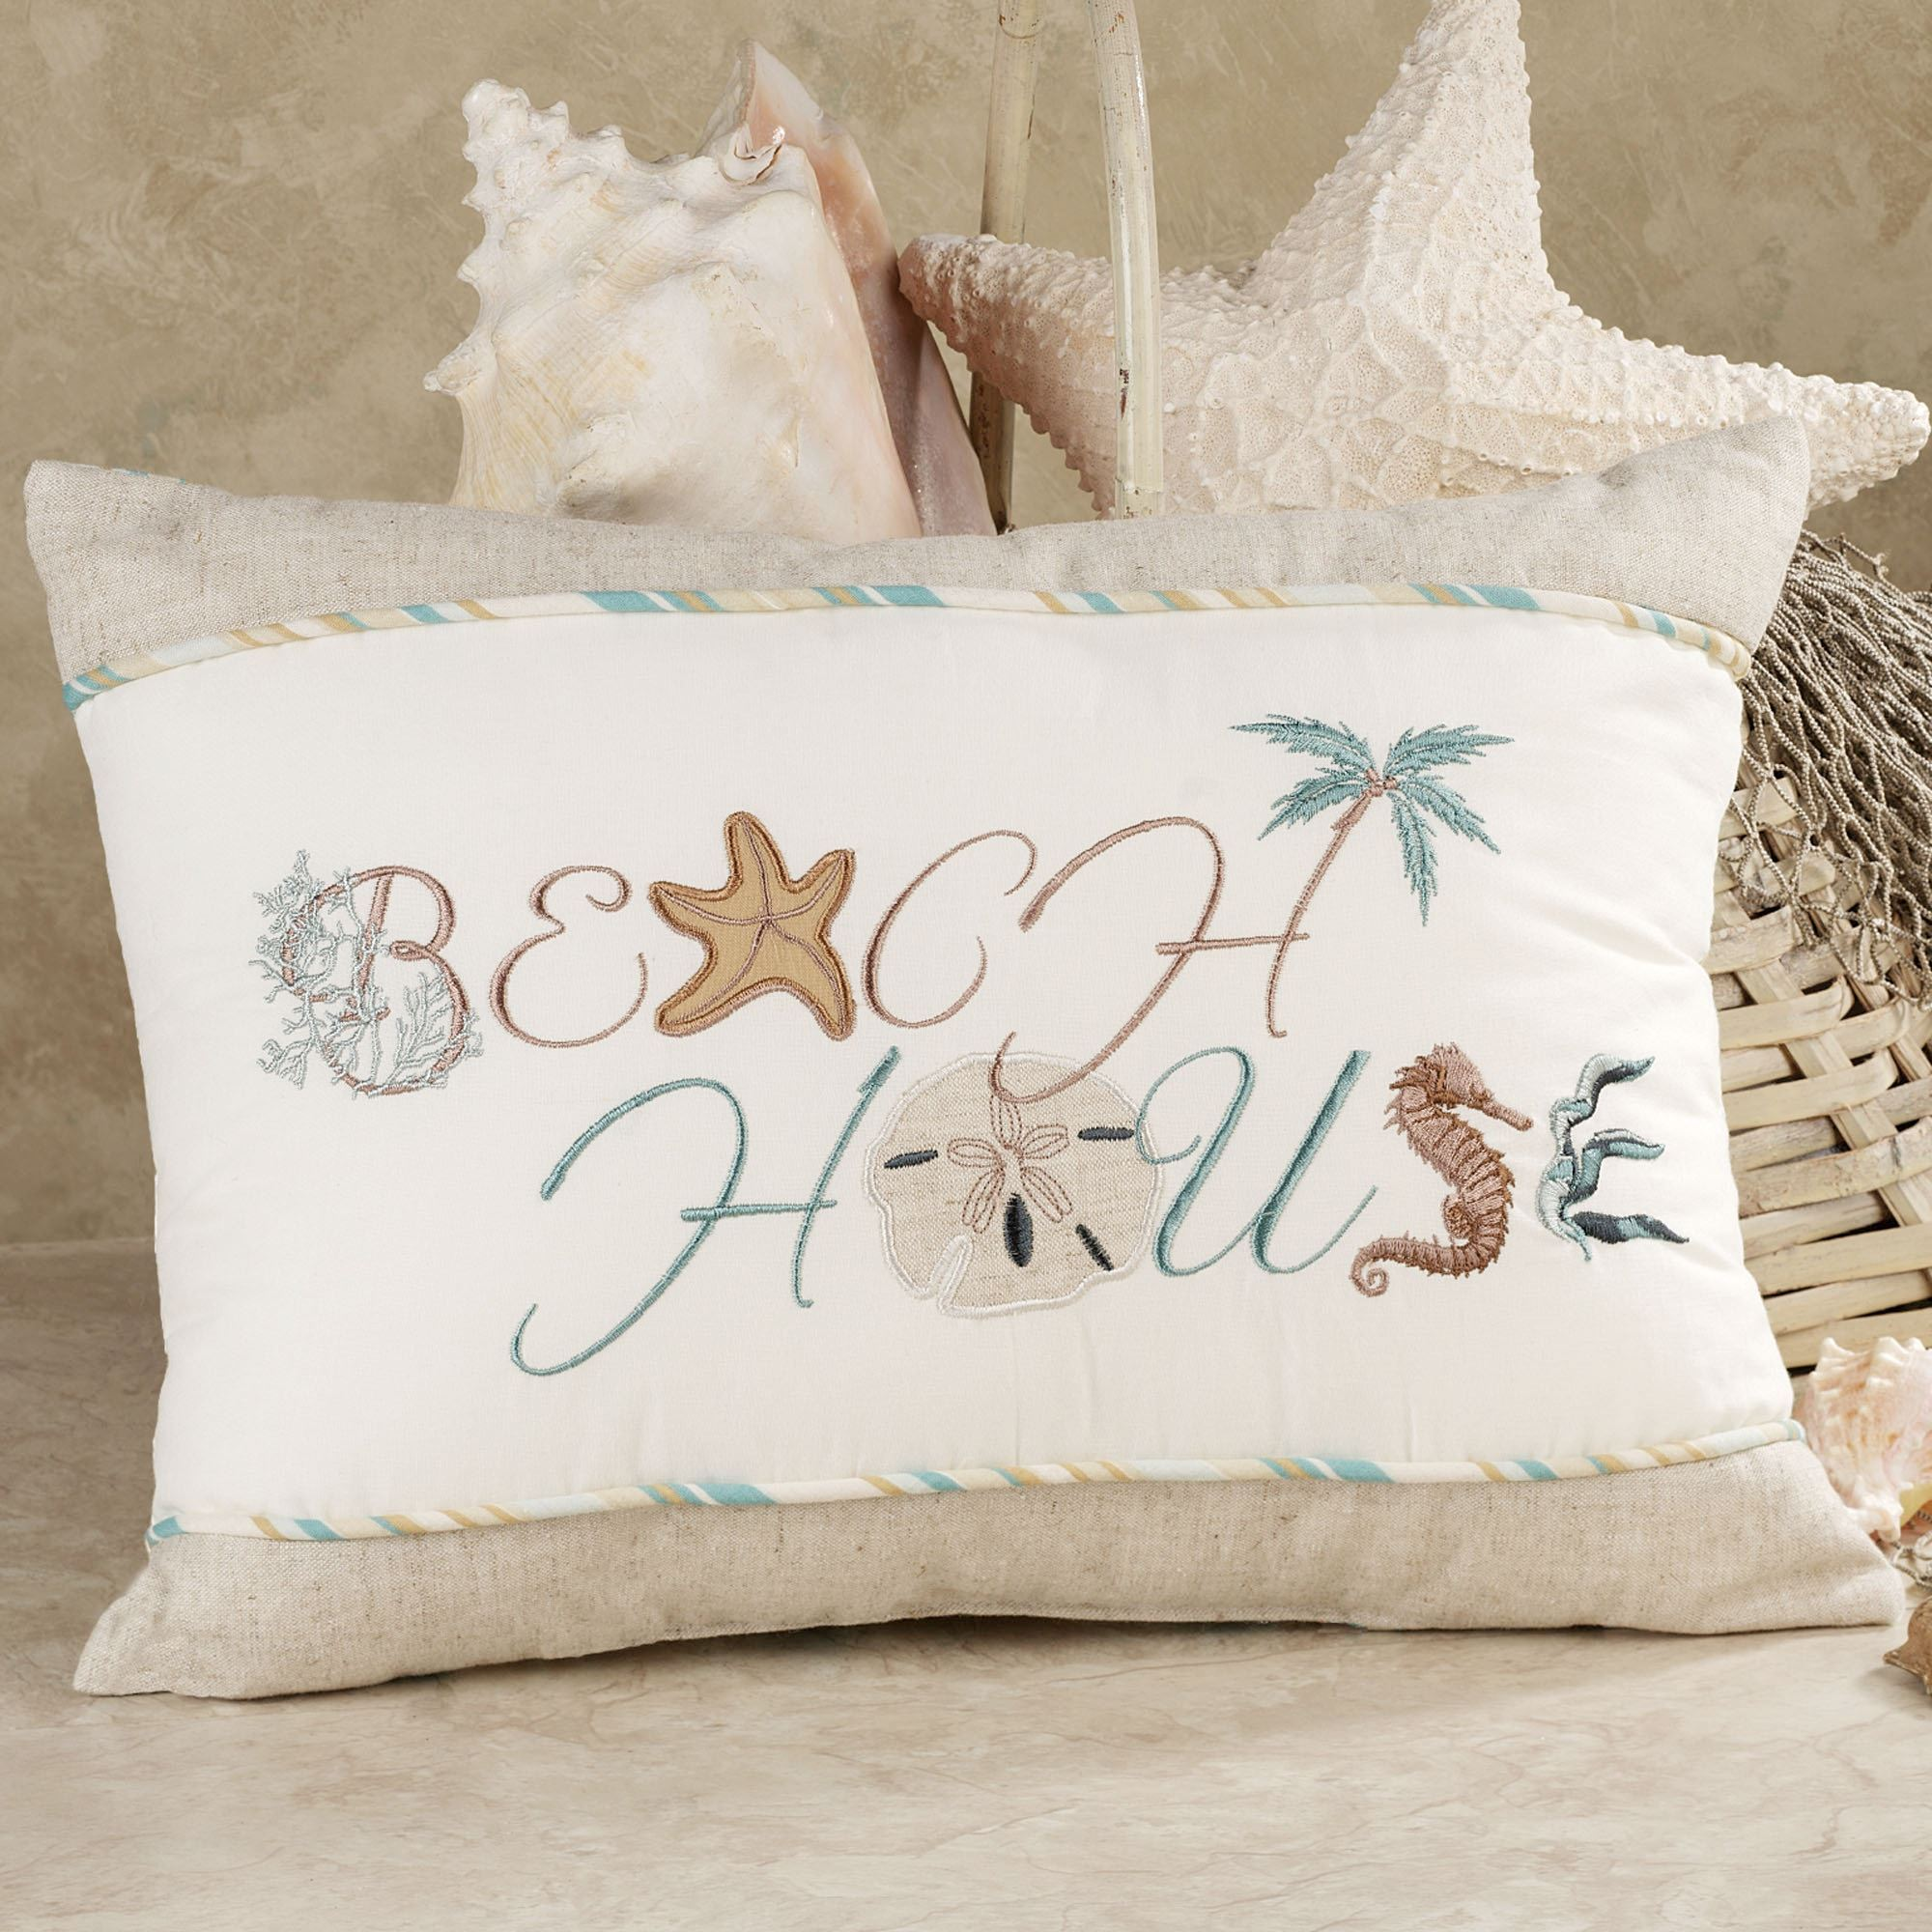 throw beach pillows sea and pillow sand sew homegrown diy